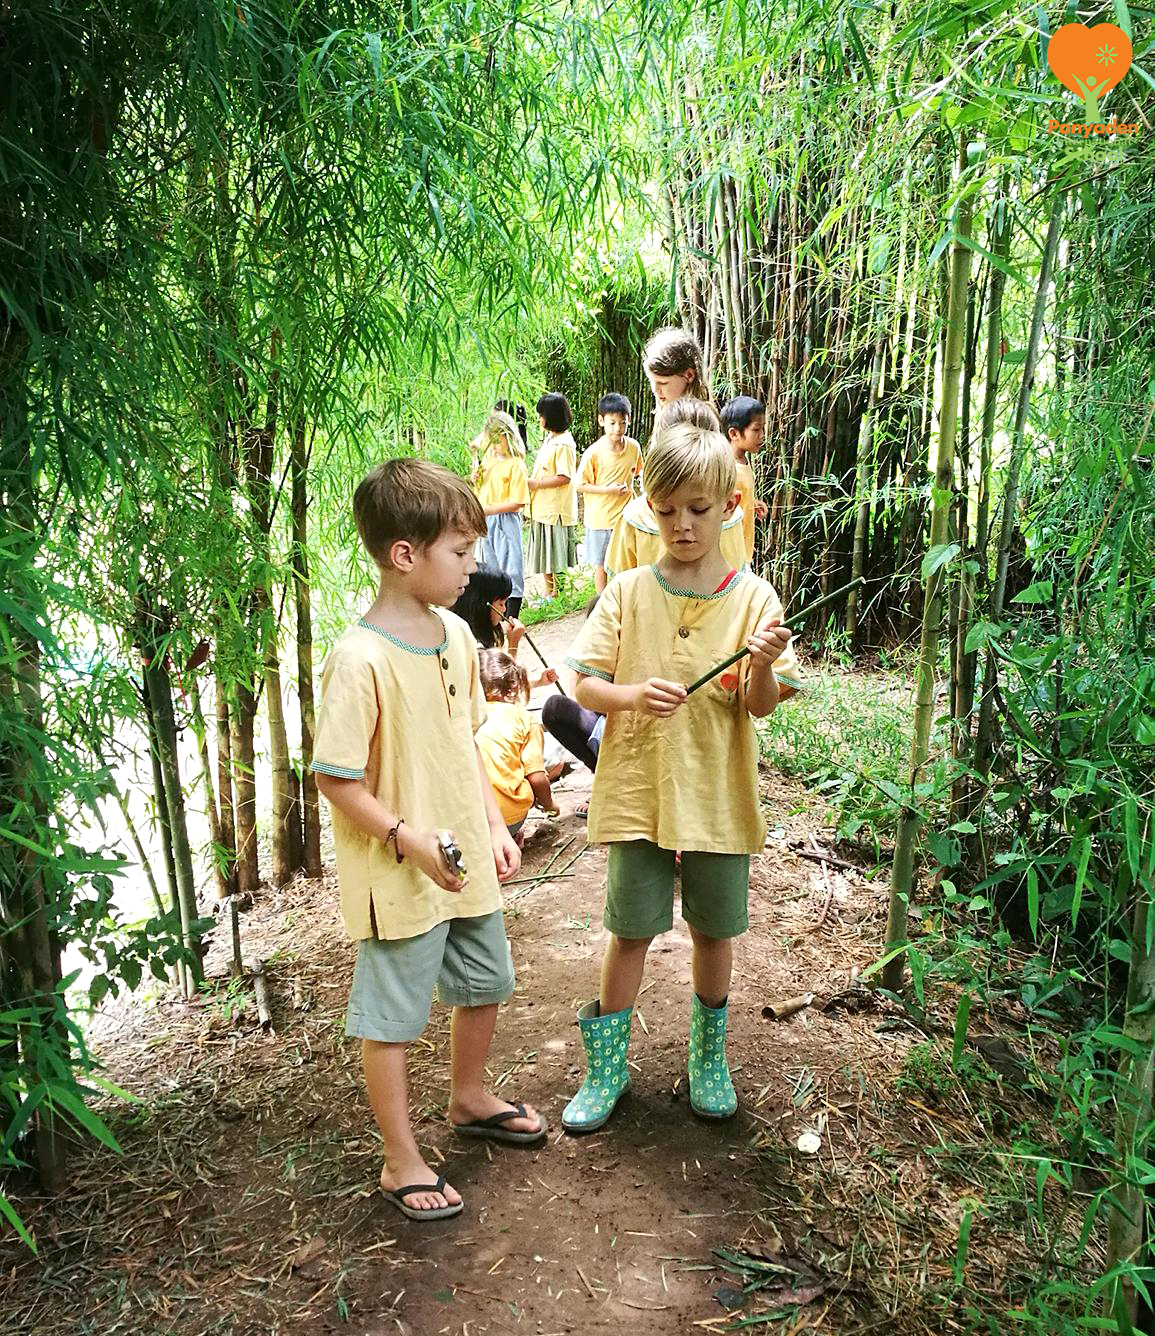 Panyaden Y3 students in the bamboo forest